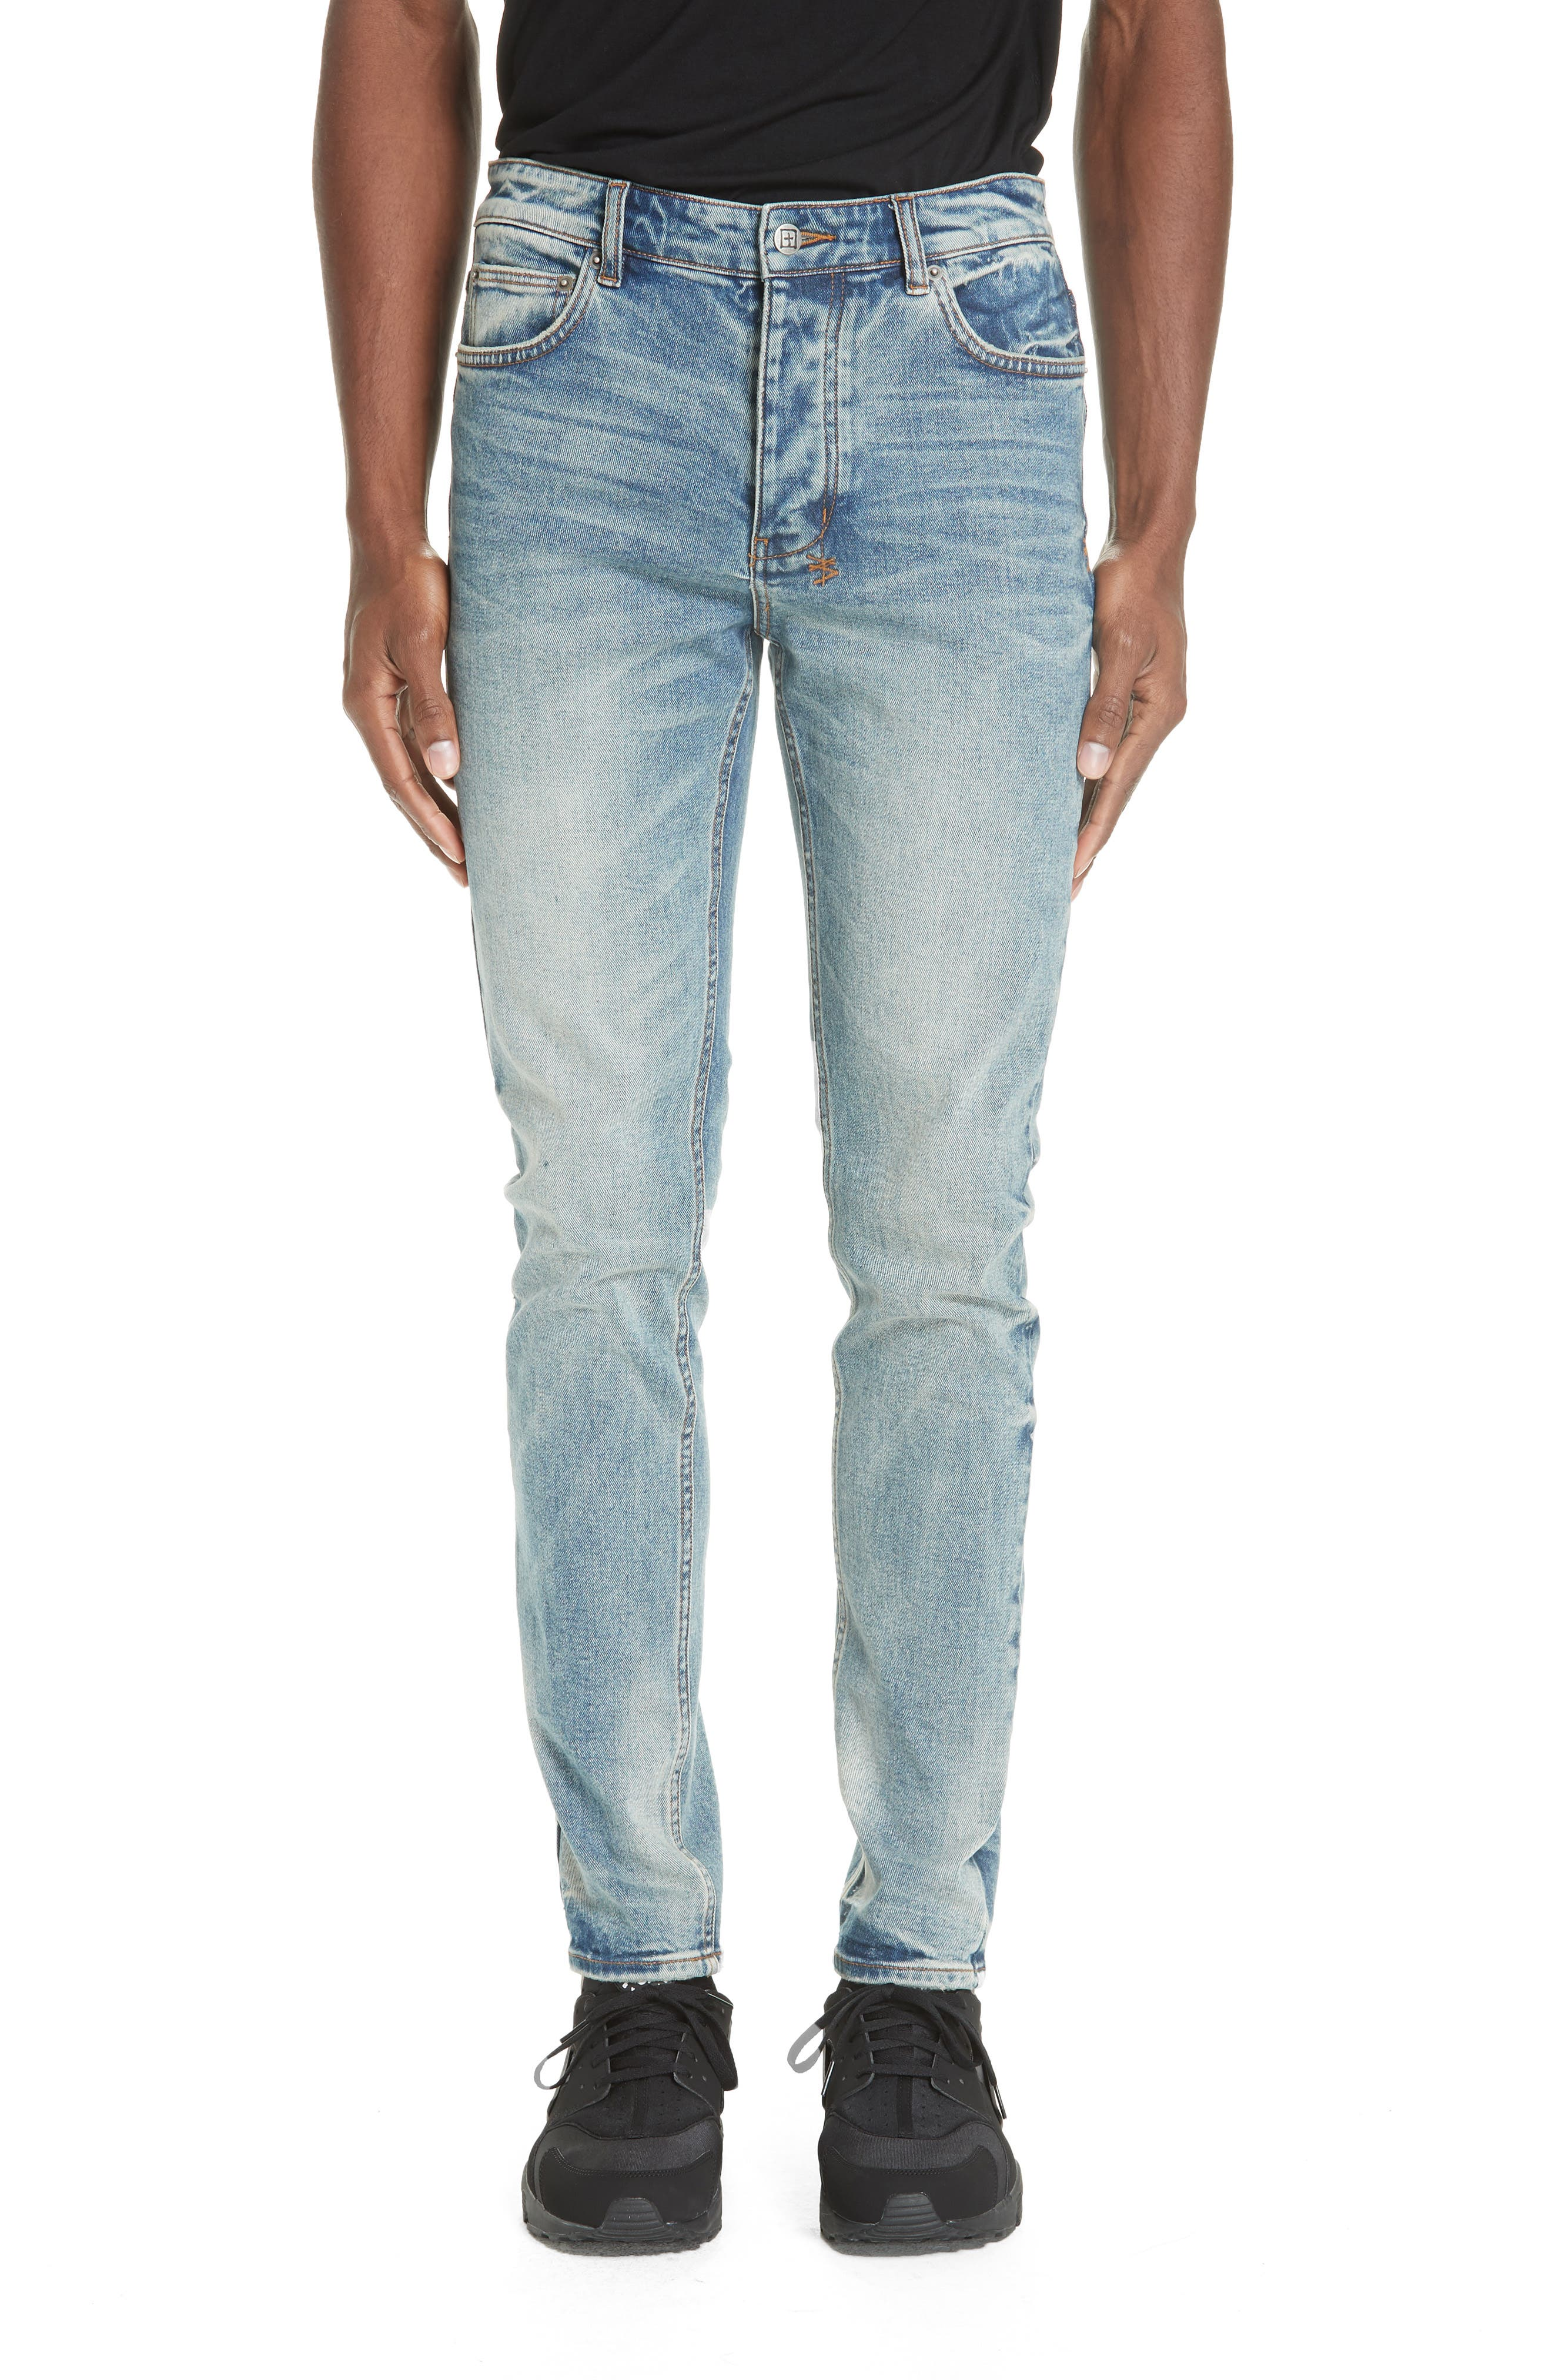 Chitch Pure Dynamite Skinny Fit Jeans,                         Main,                         color, DENIM